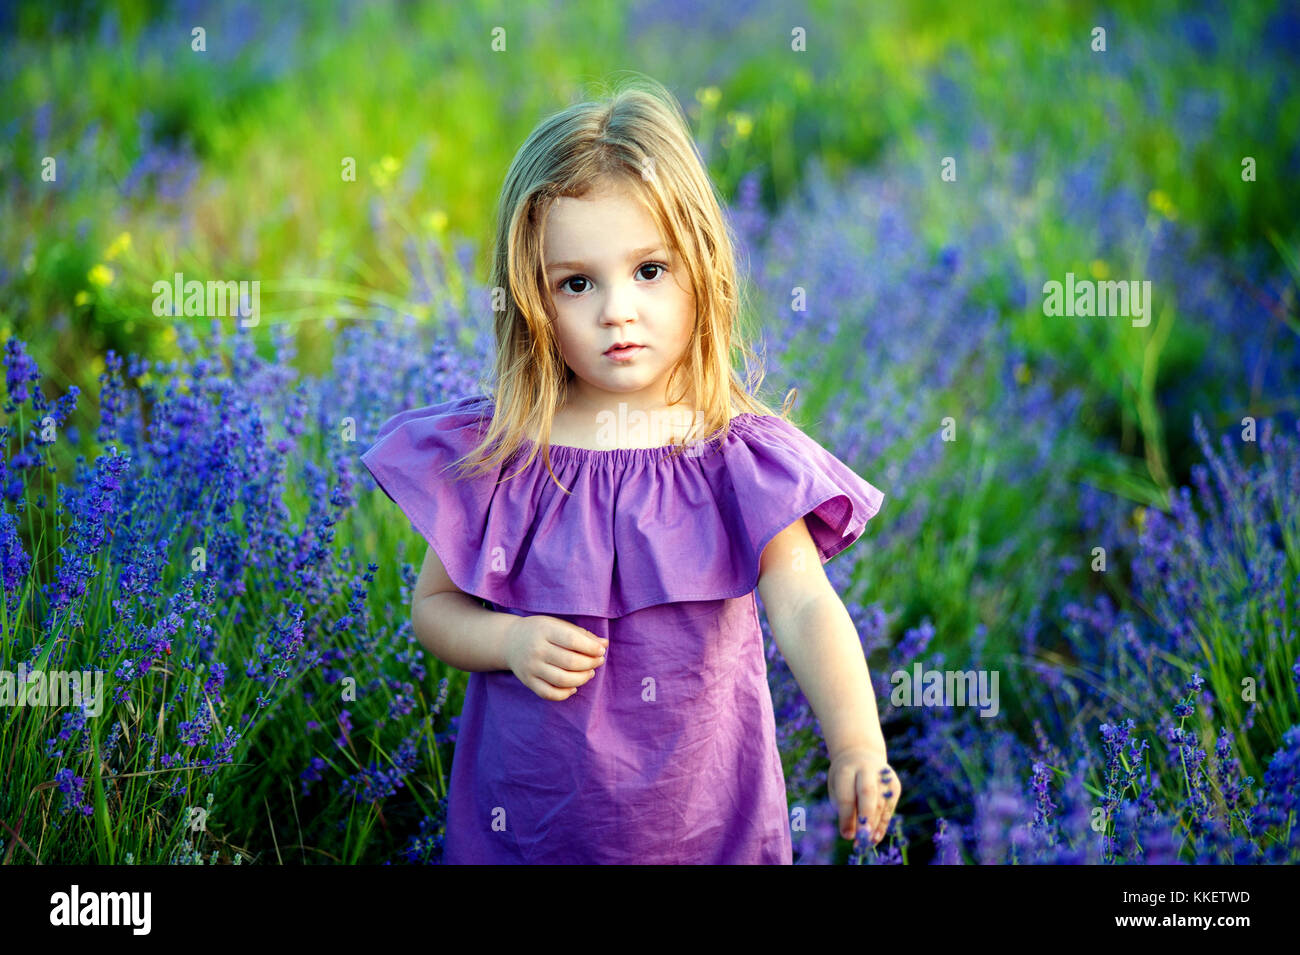 fa595887f3b3 Little girl little girl in a pink dress looking hurt and sad look, in the  summer on a flowering field background